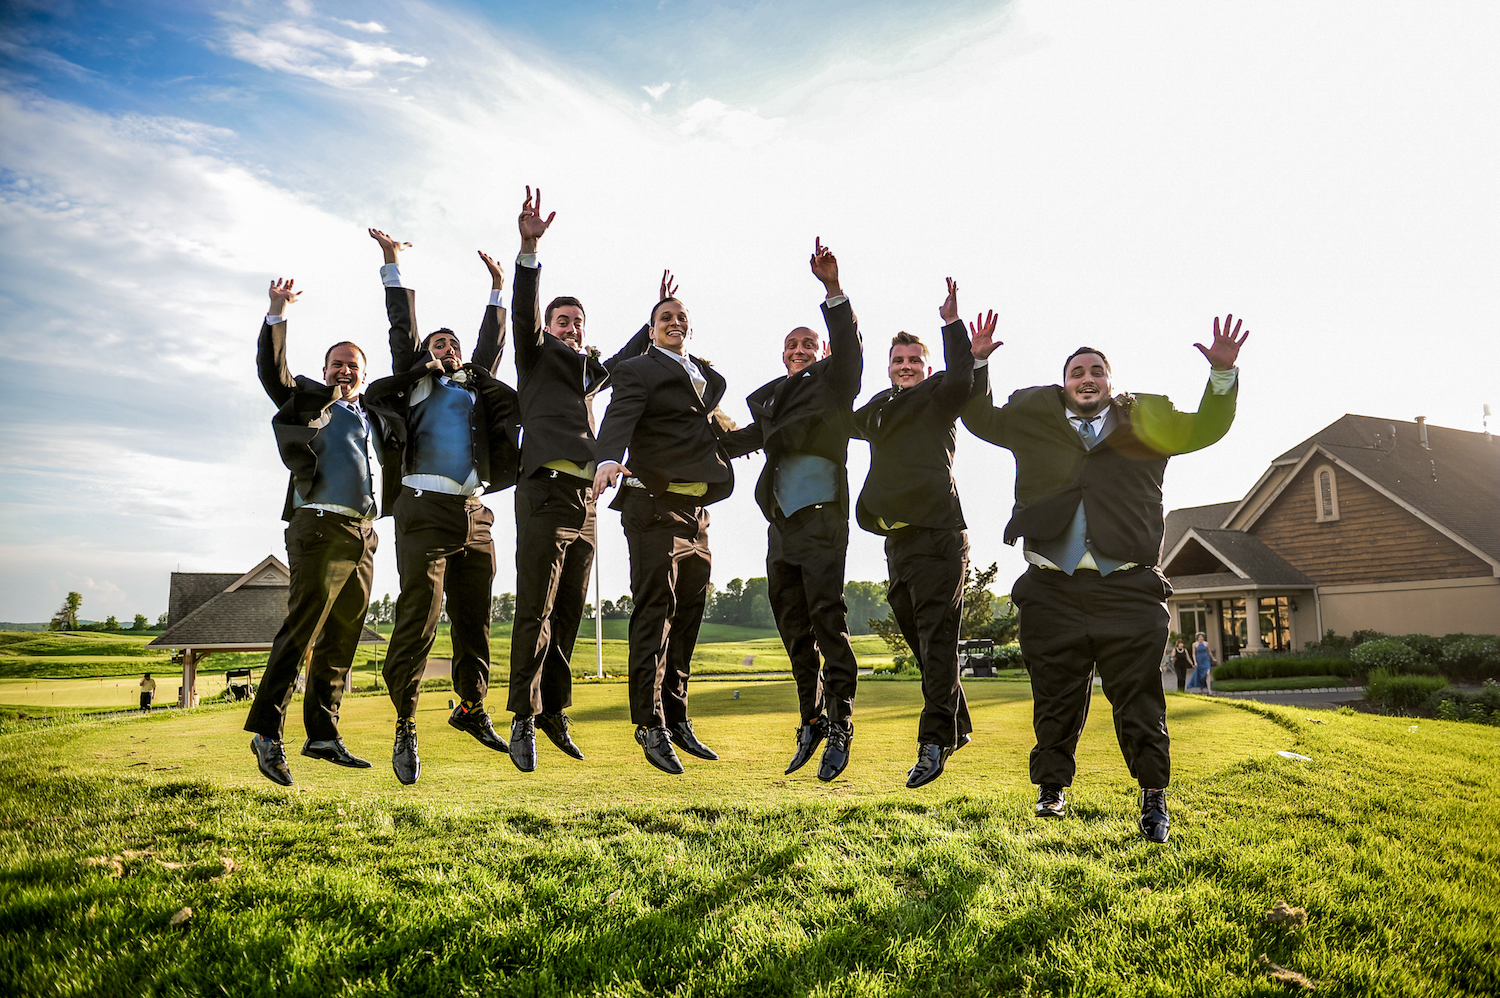 nj-wedding-photographers-nicole&mike-groomsmen-jumping-outside